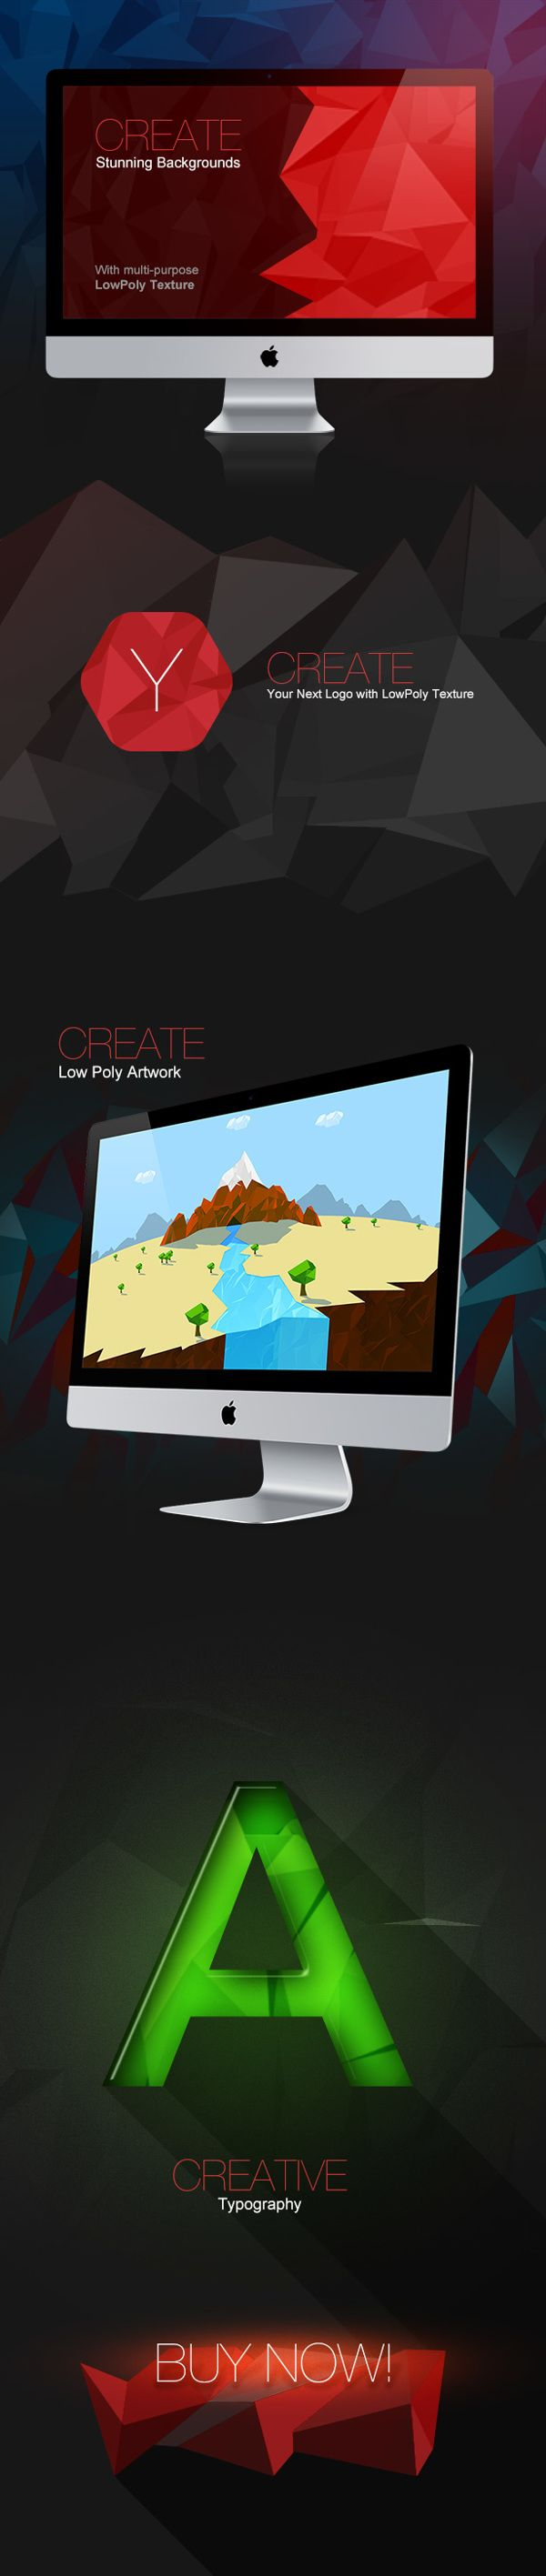 Low Poly Multi-purpose Texture (Web Design)